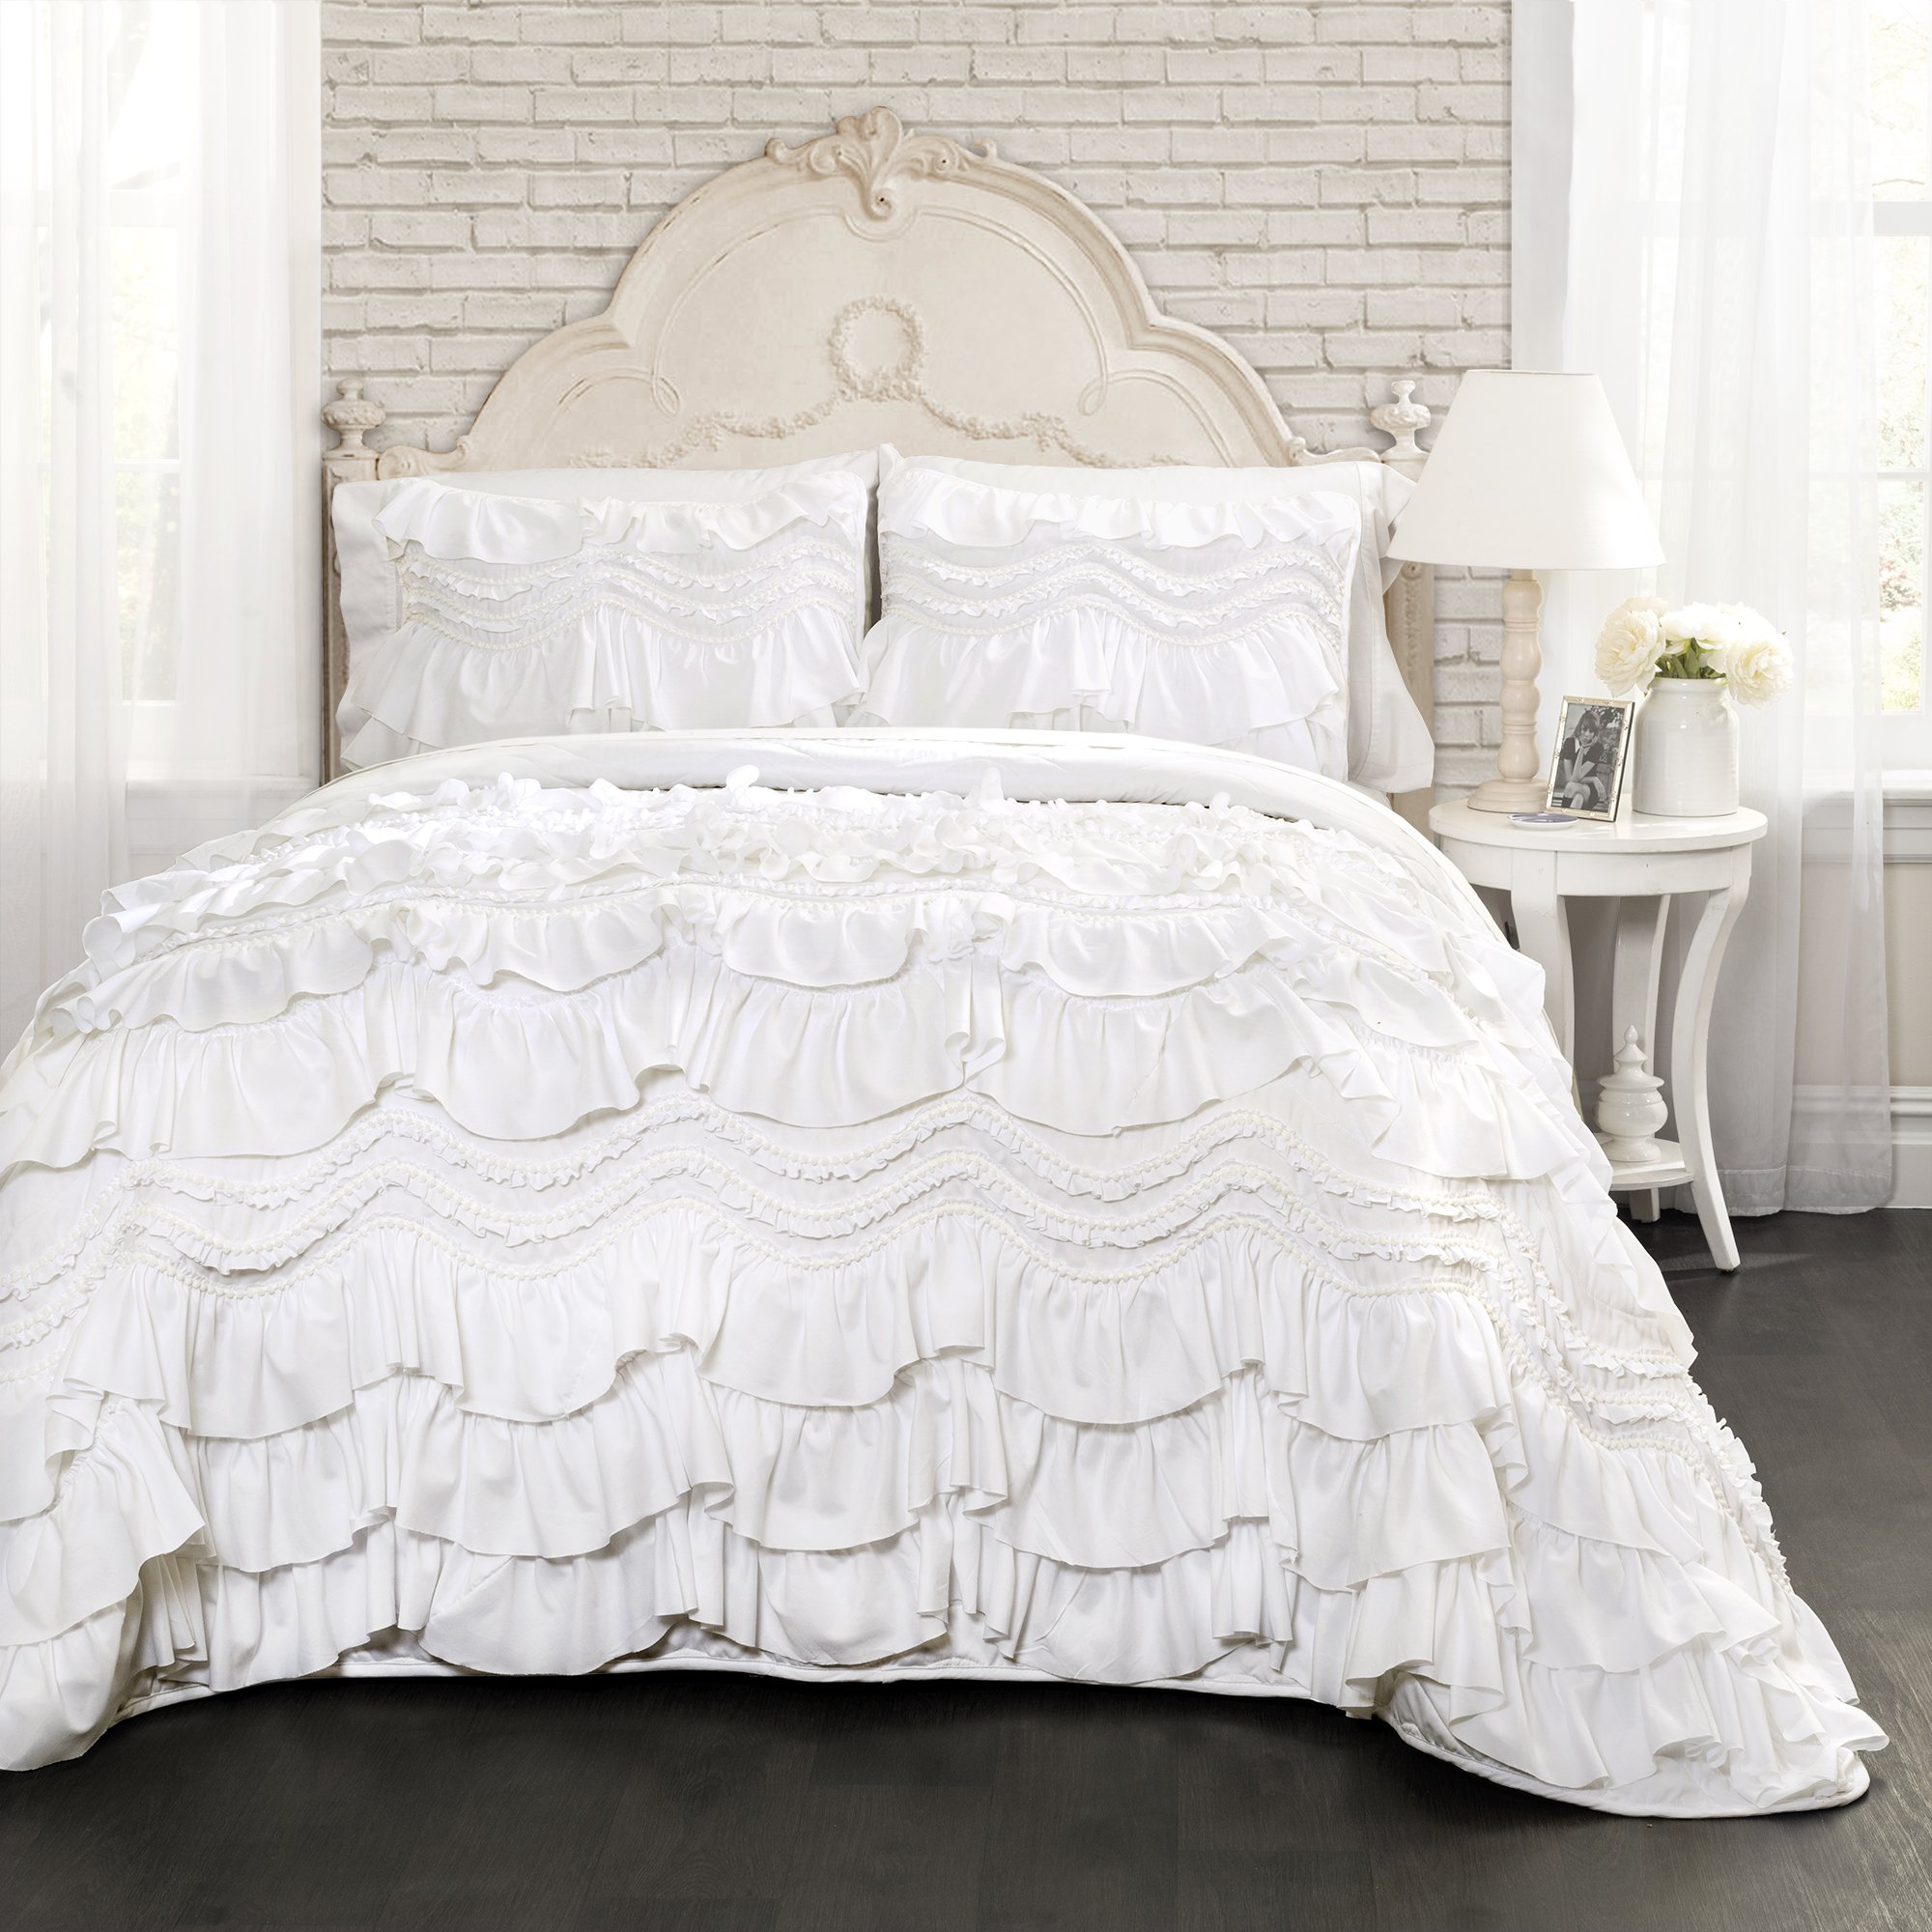 Lush Decor Kemmy Quilt Ruffled Textured 3 Piece Full Queen Size Bedding Set, White by Lush Decor